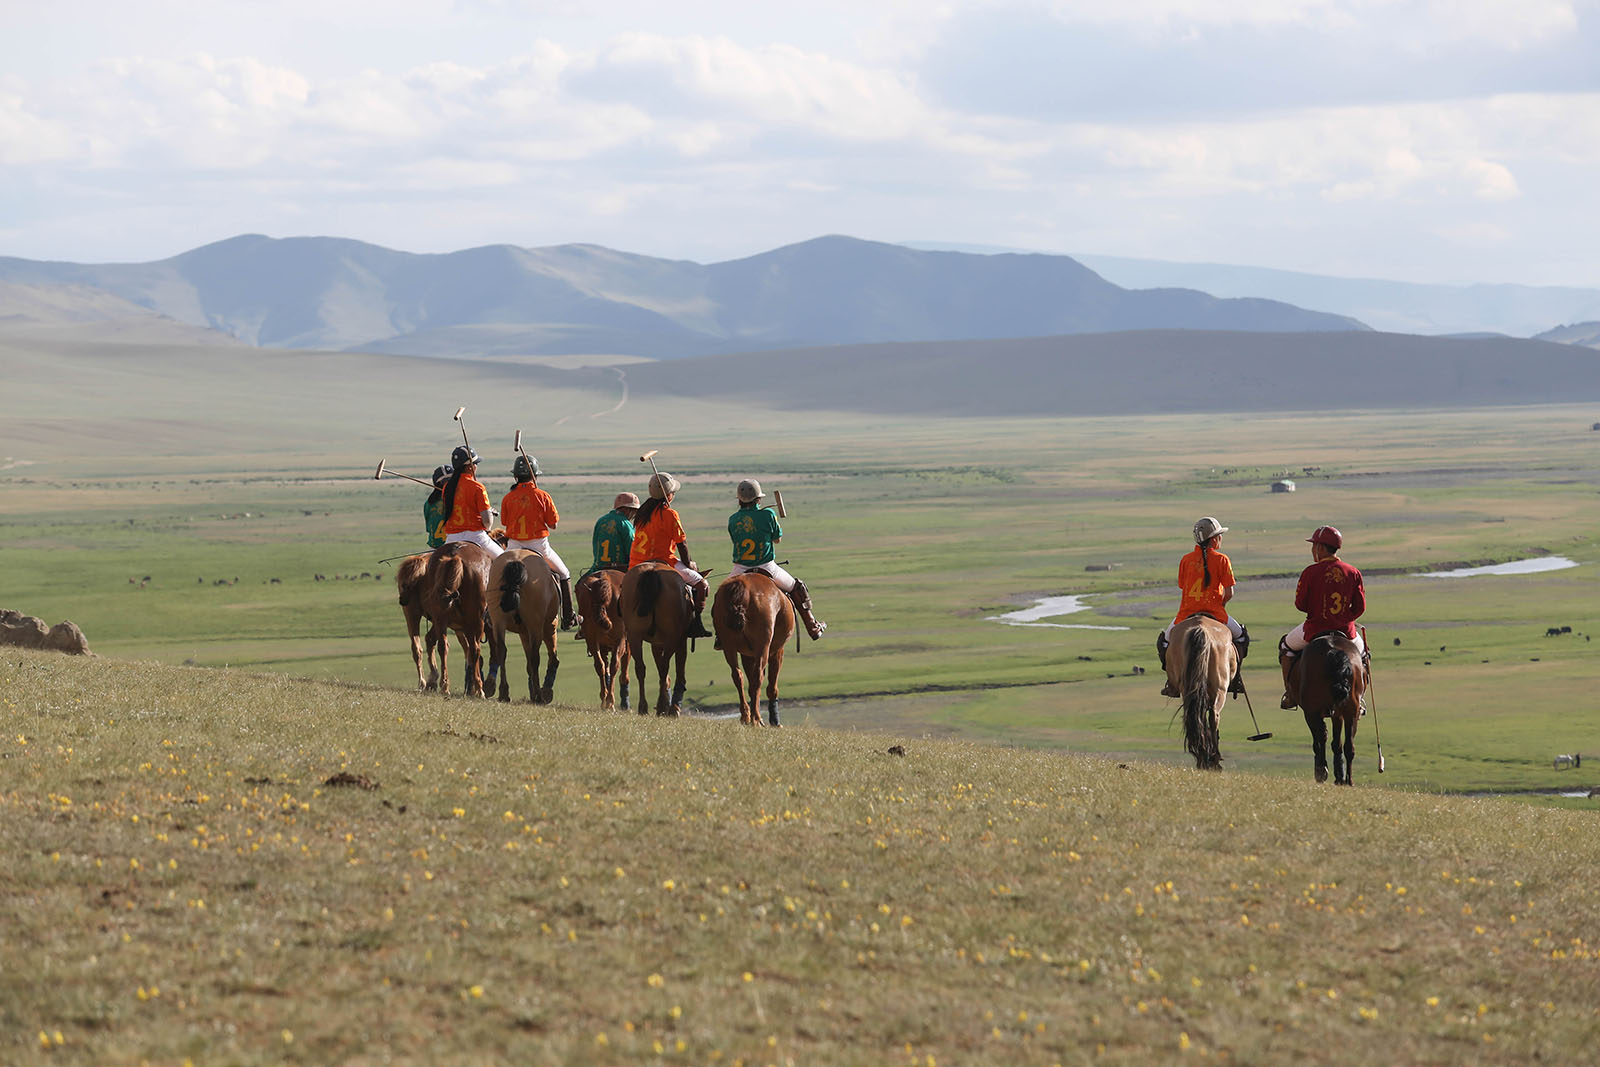 Polo players in Mongolia